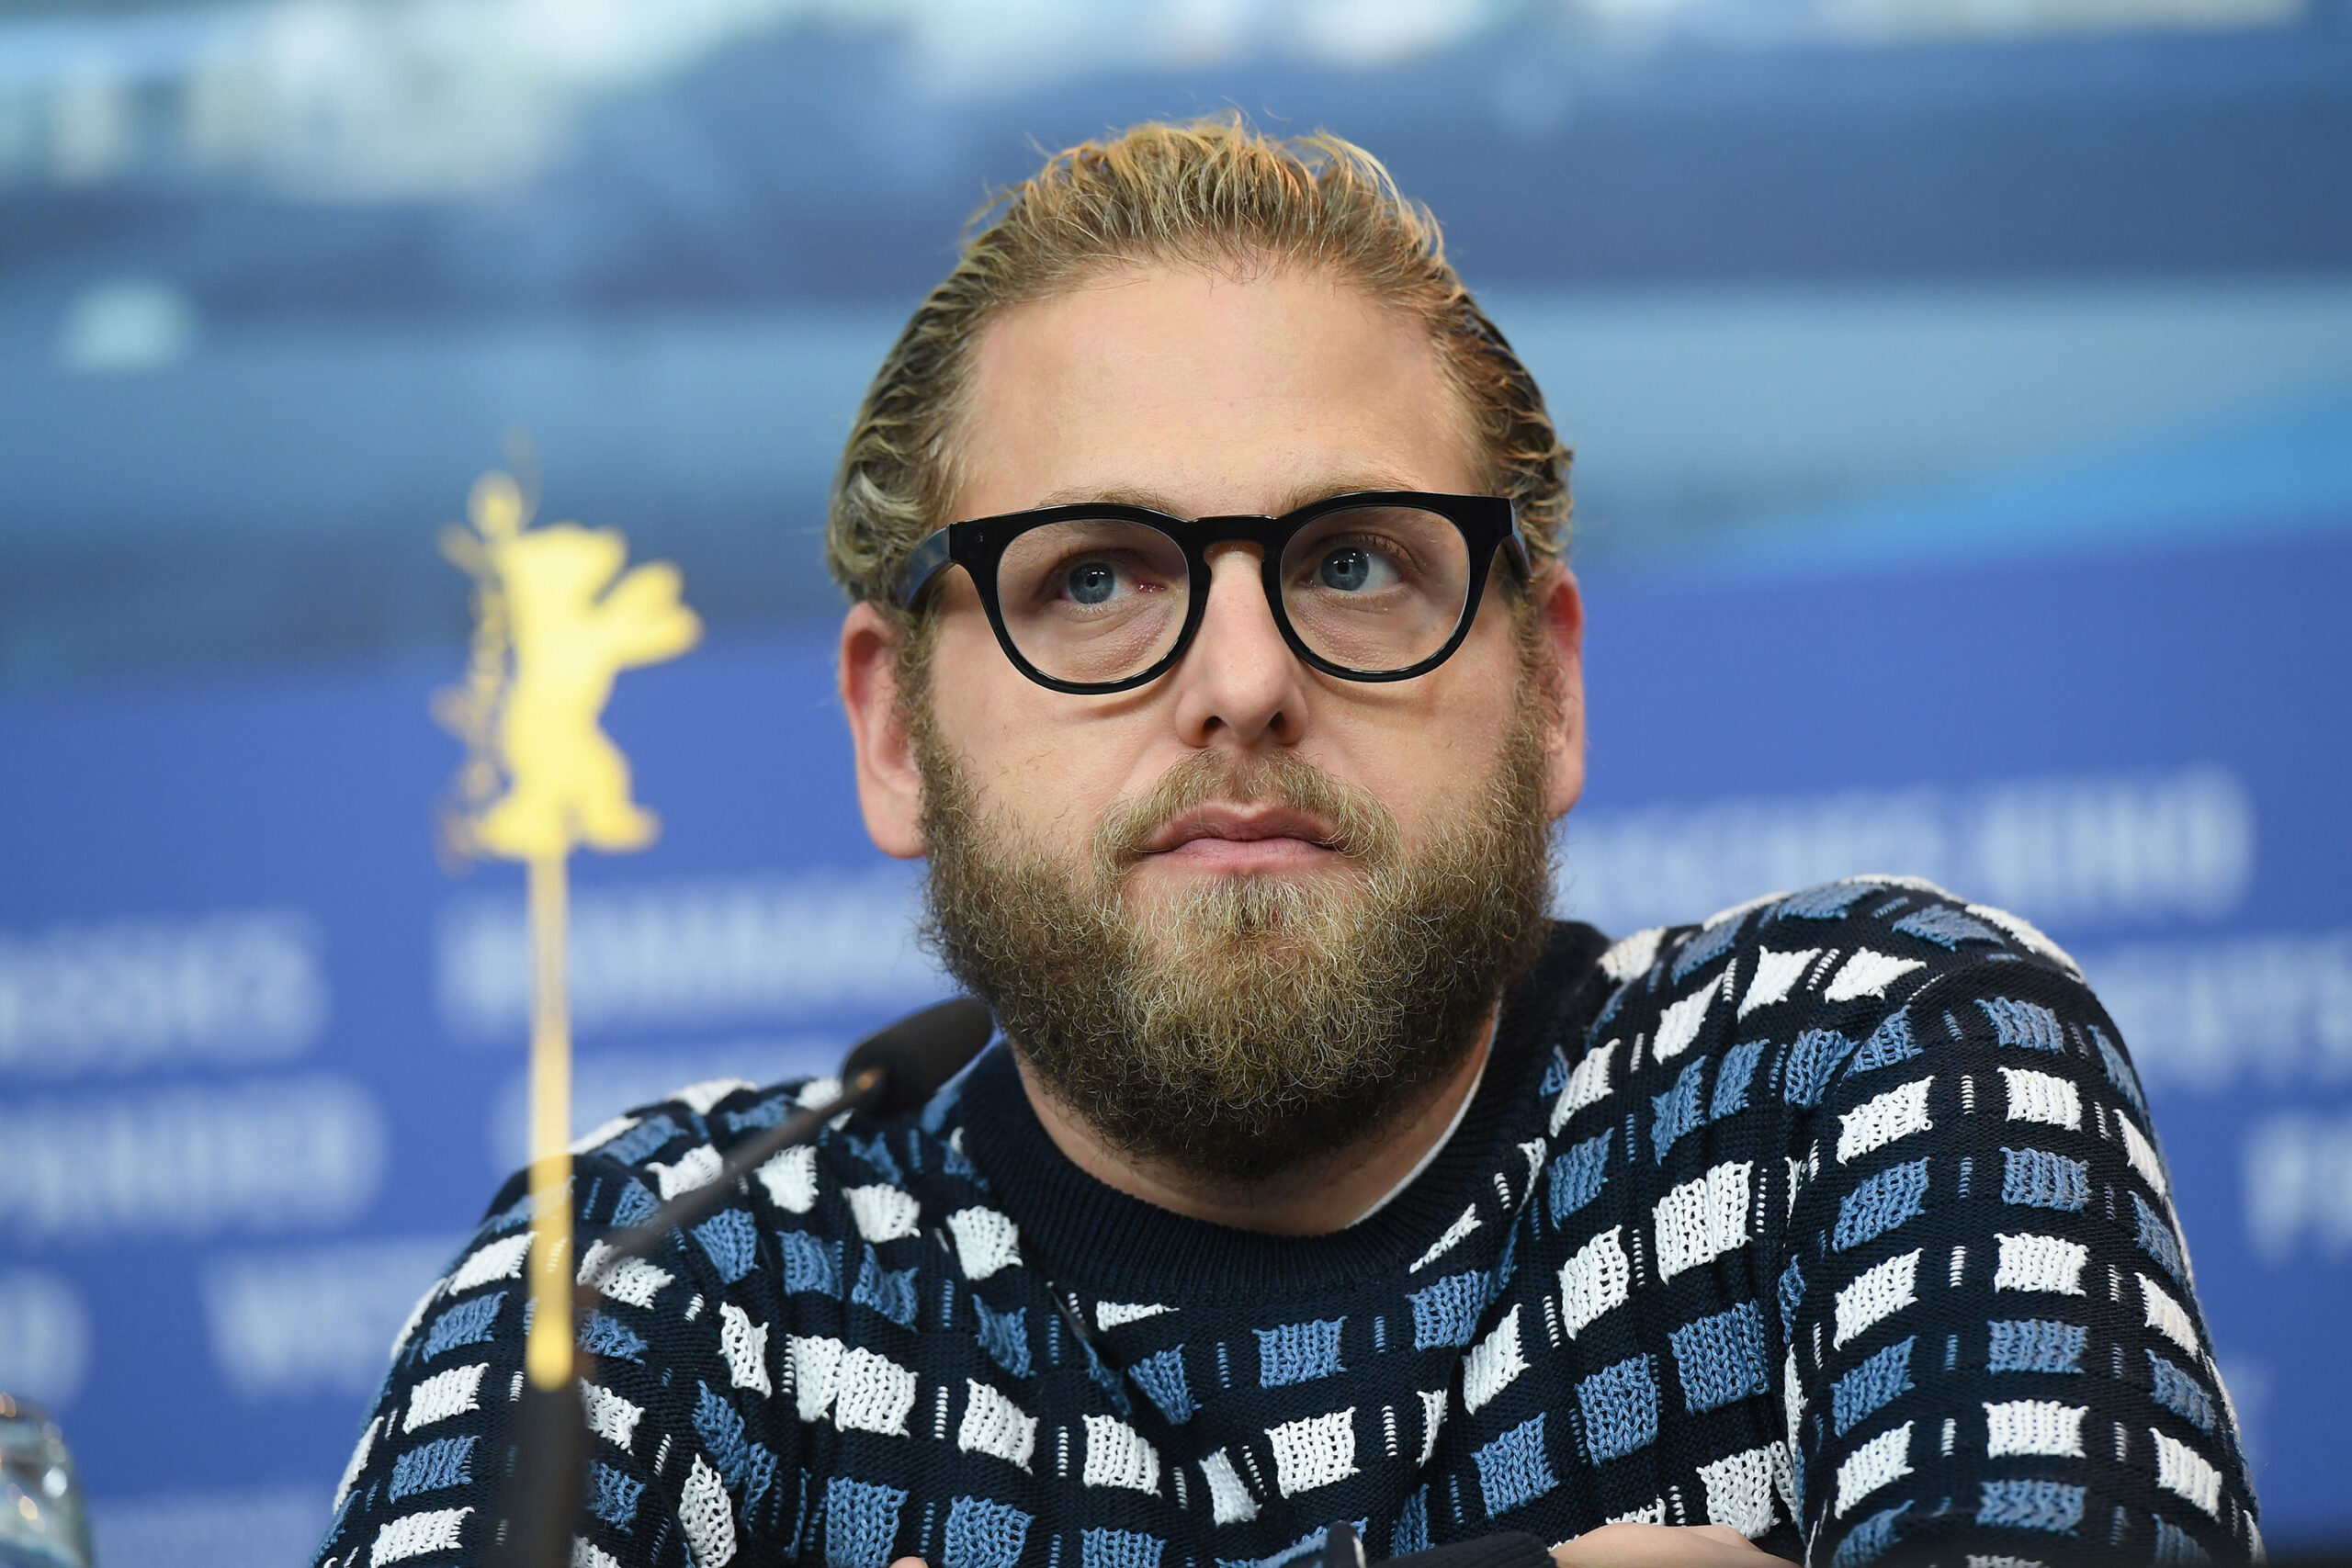 <i>Stephane Cardinale/Corbis via Getty Images</i><br/>Jonah Hill has taken to Instagram to ask followers not to comment on his body.